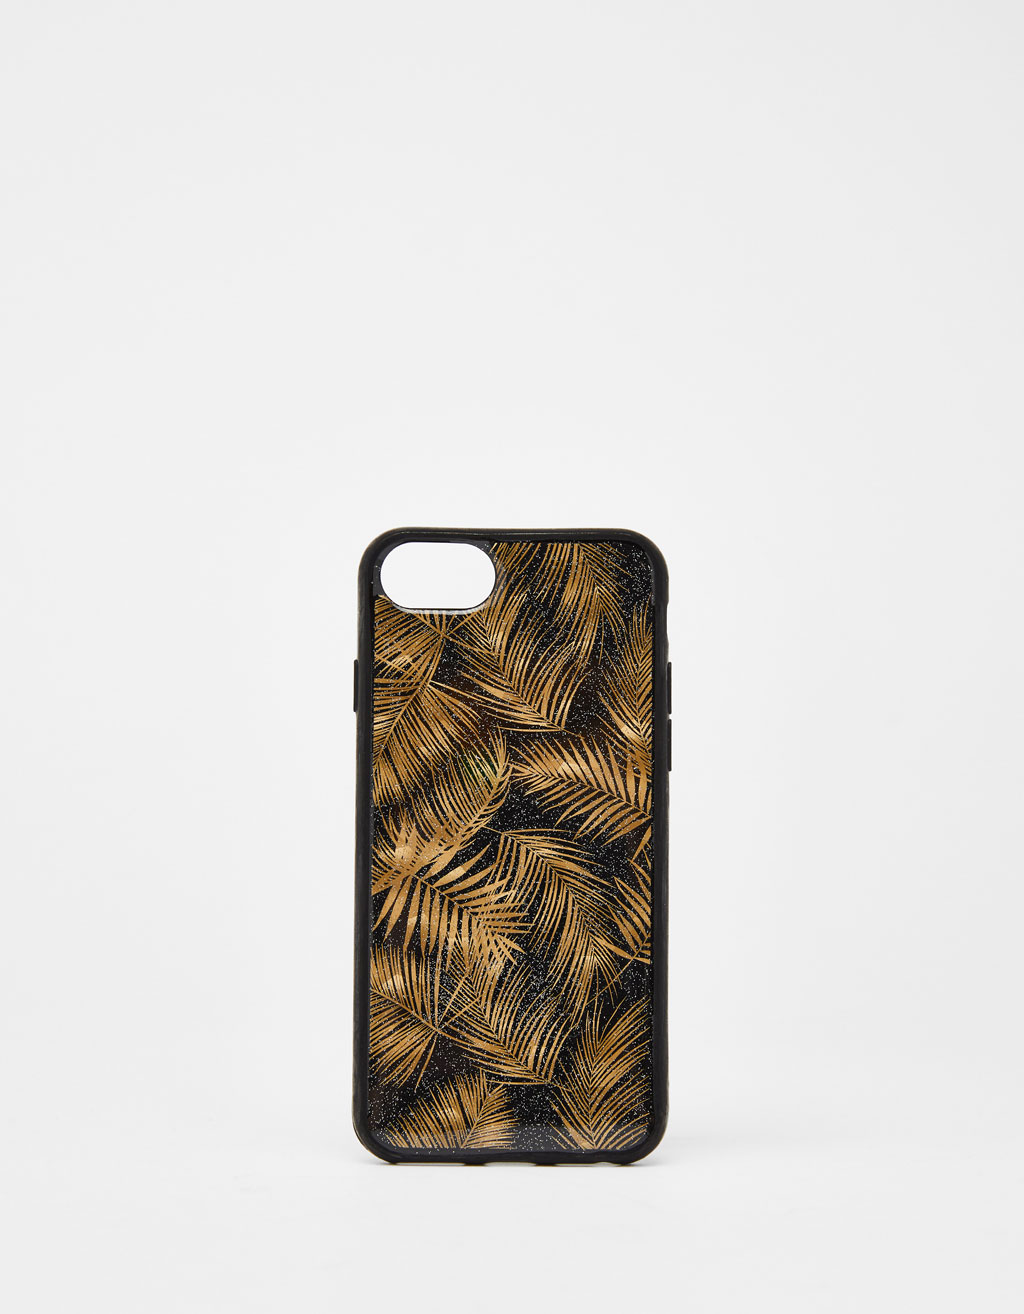 Palm leaf iPhone 6/6s/7/8 case